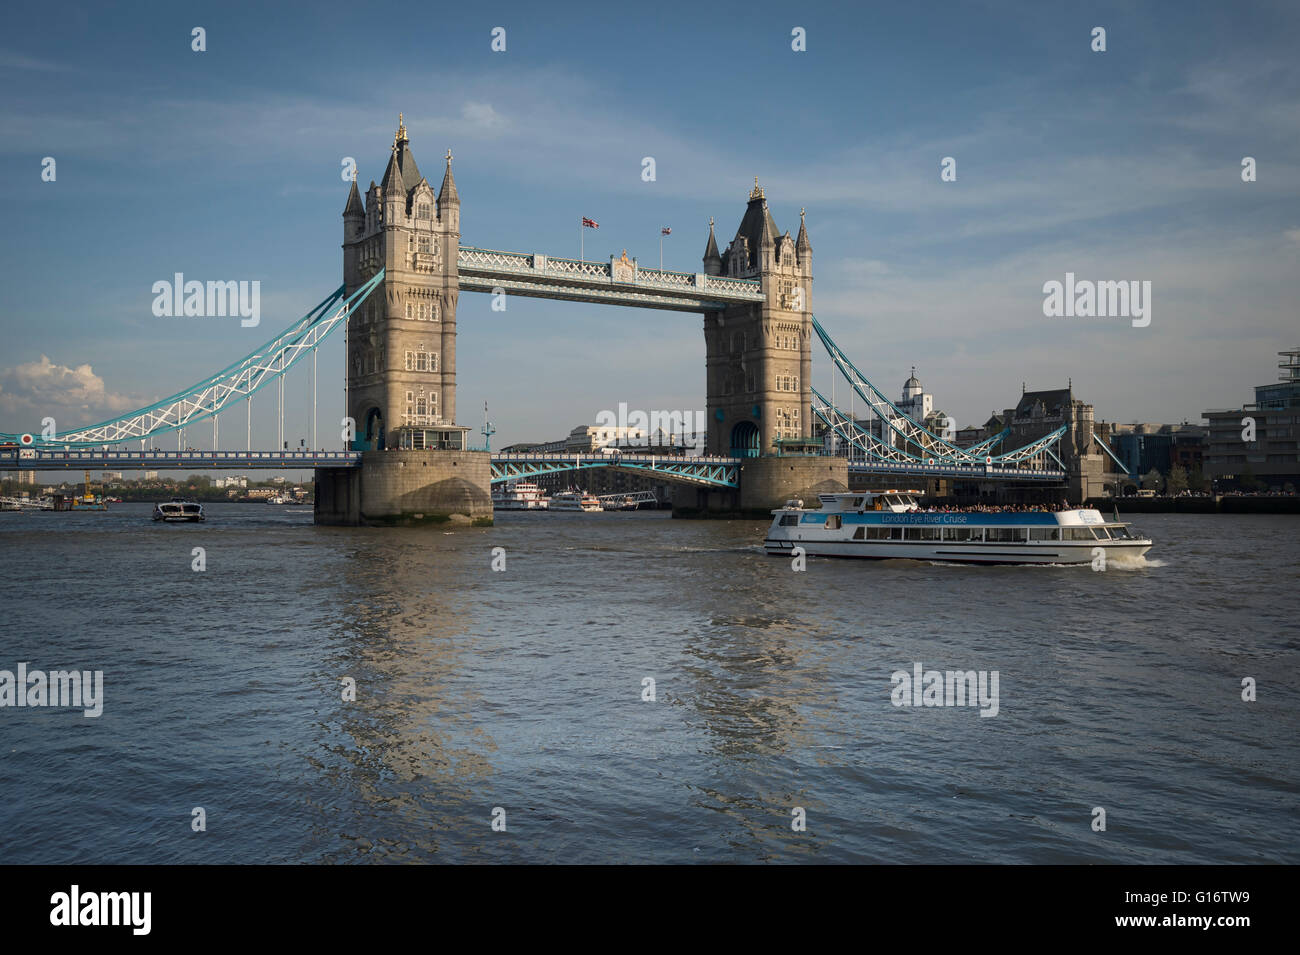 Tower Bridge, London with river cruise on the River Thames - Stock Image